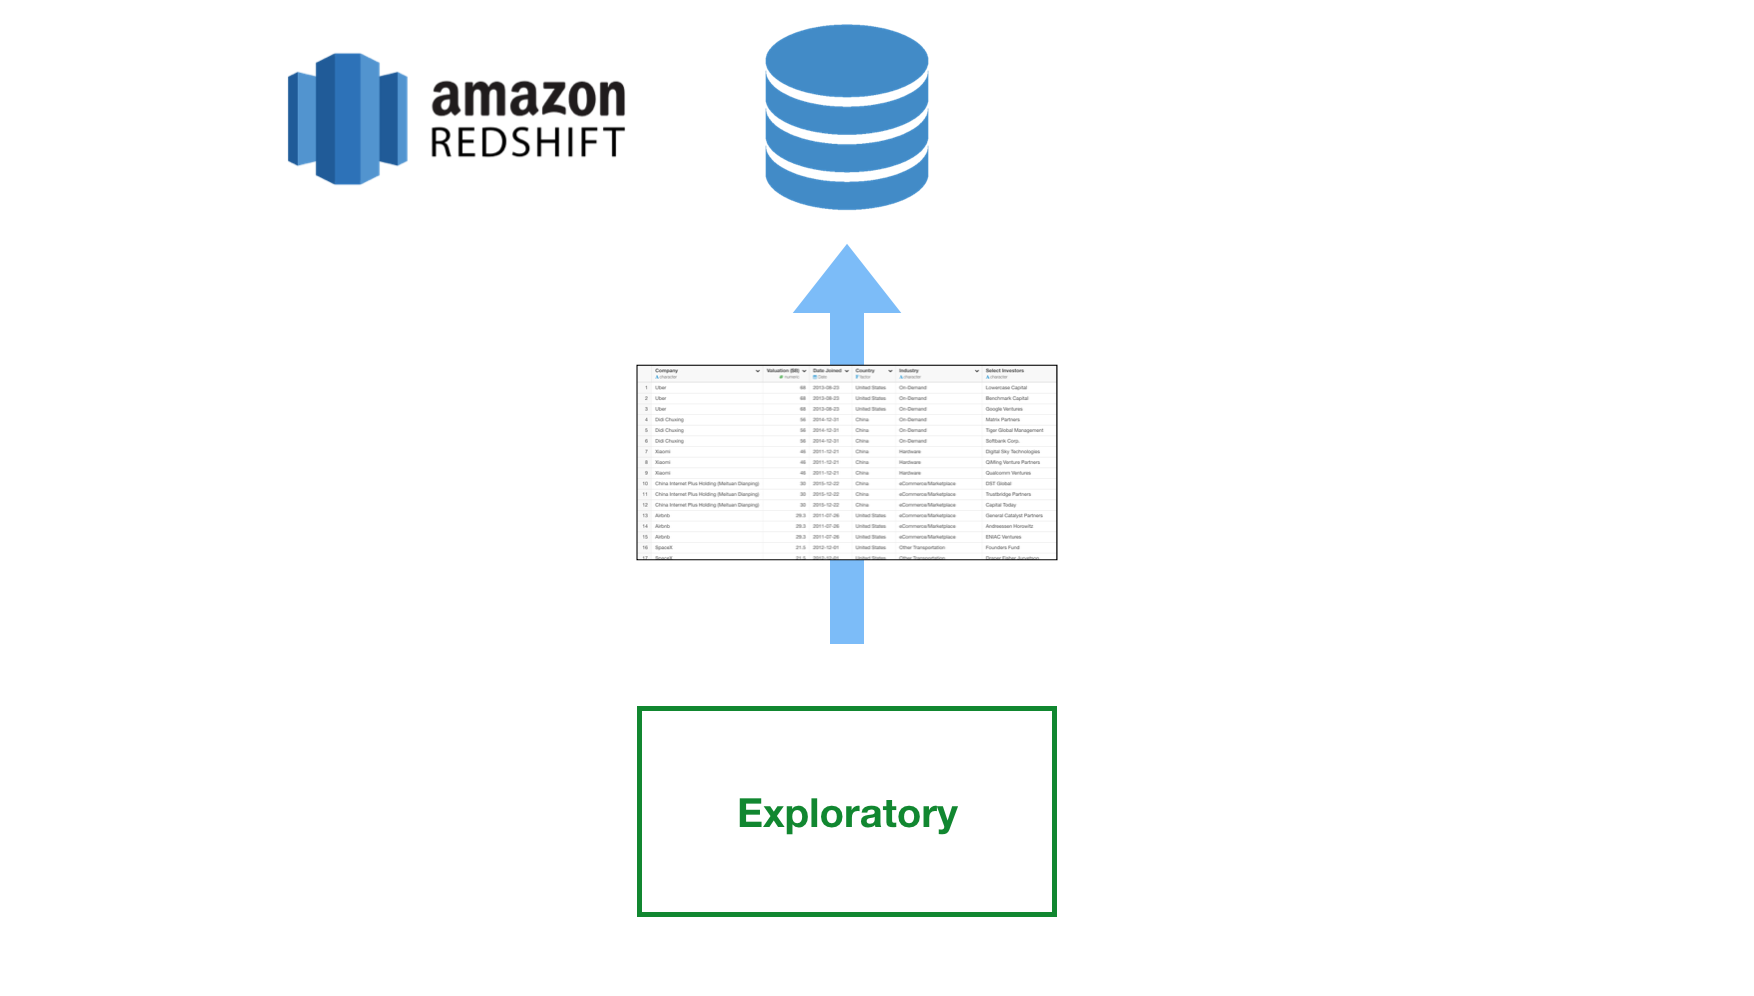 How to Write Data Wrangling Result Back to Amazon Redshift DB in R